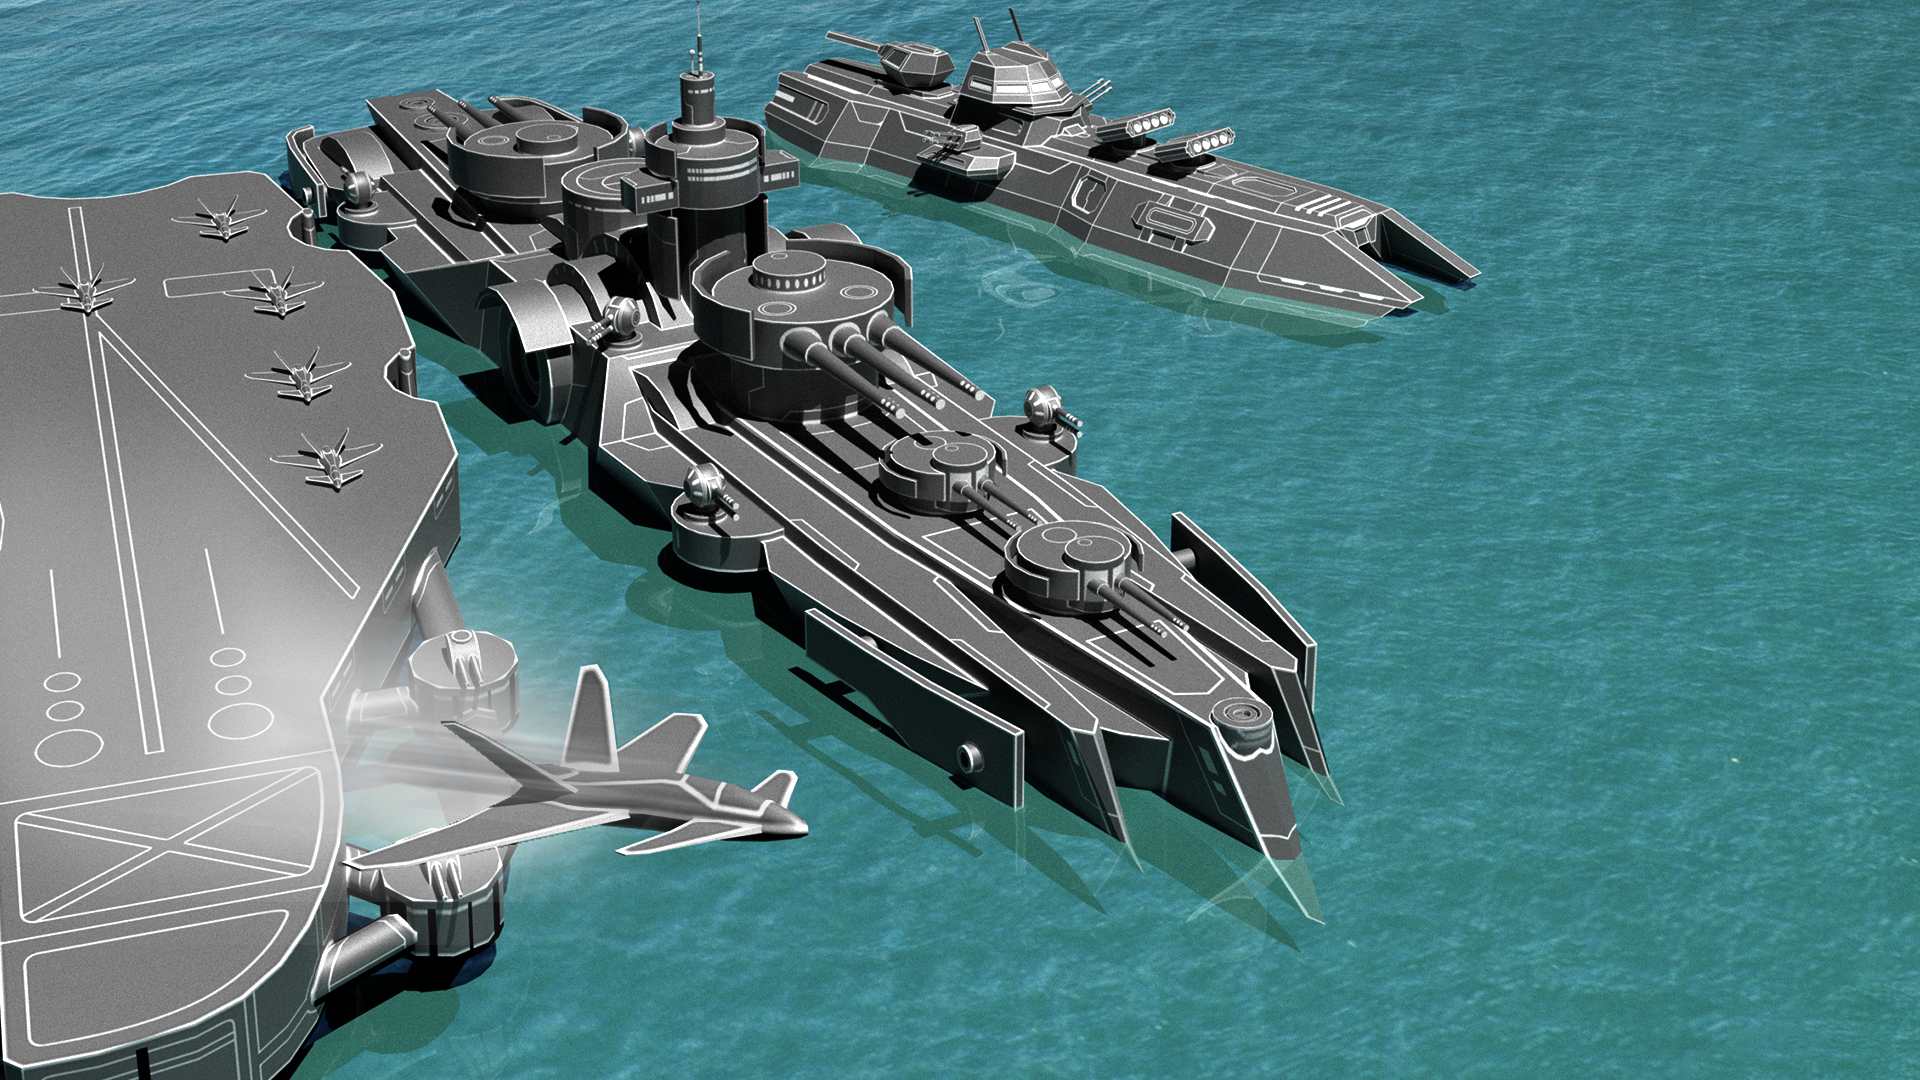 We talk to Smuttlewerk about what distinguishes Fleet Battle from other Battleship style games